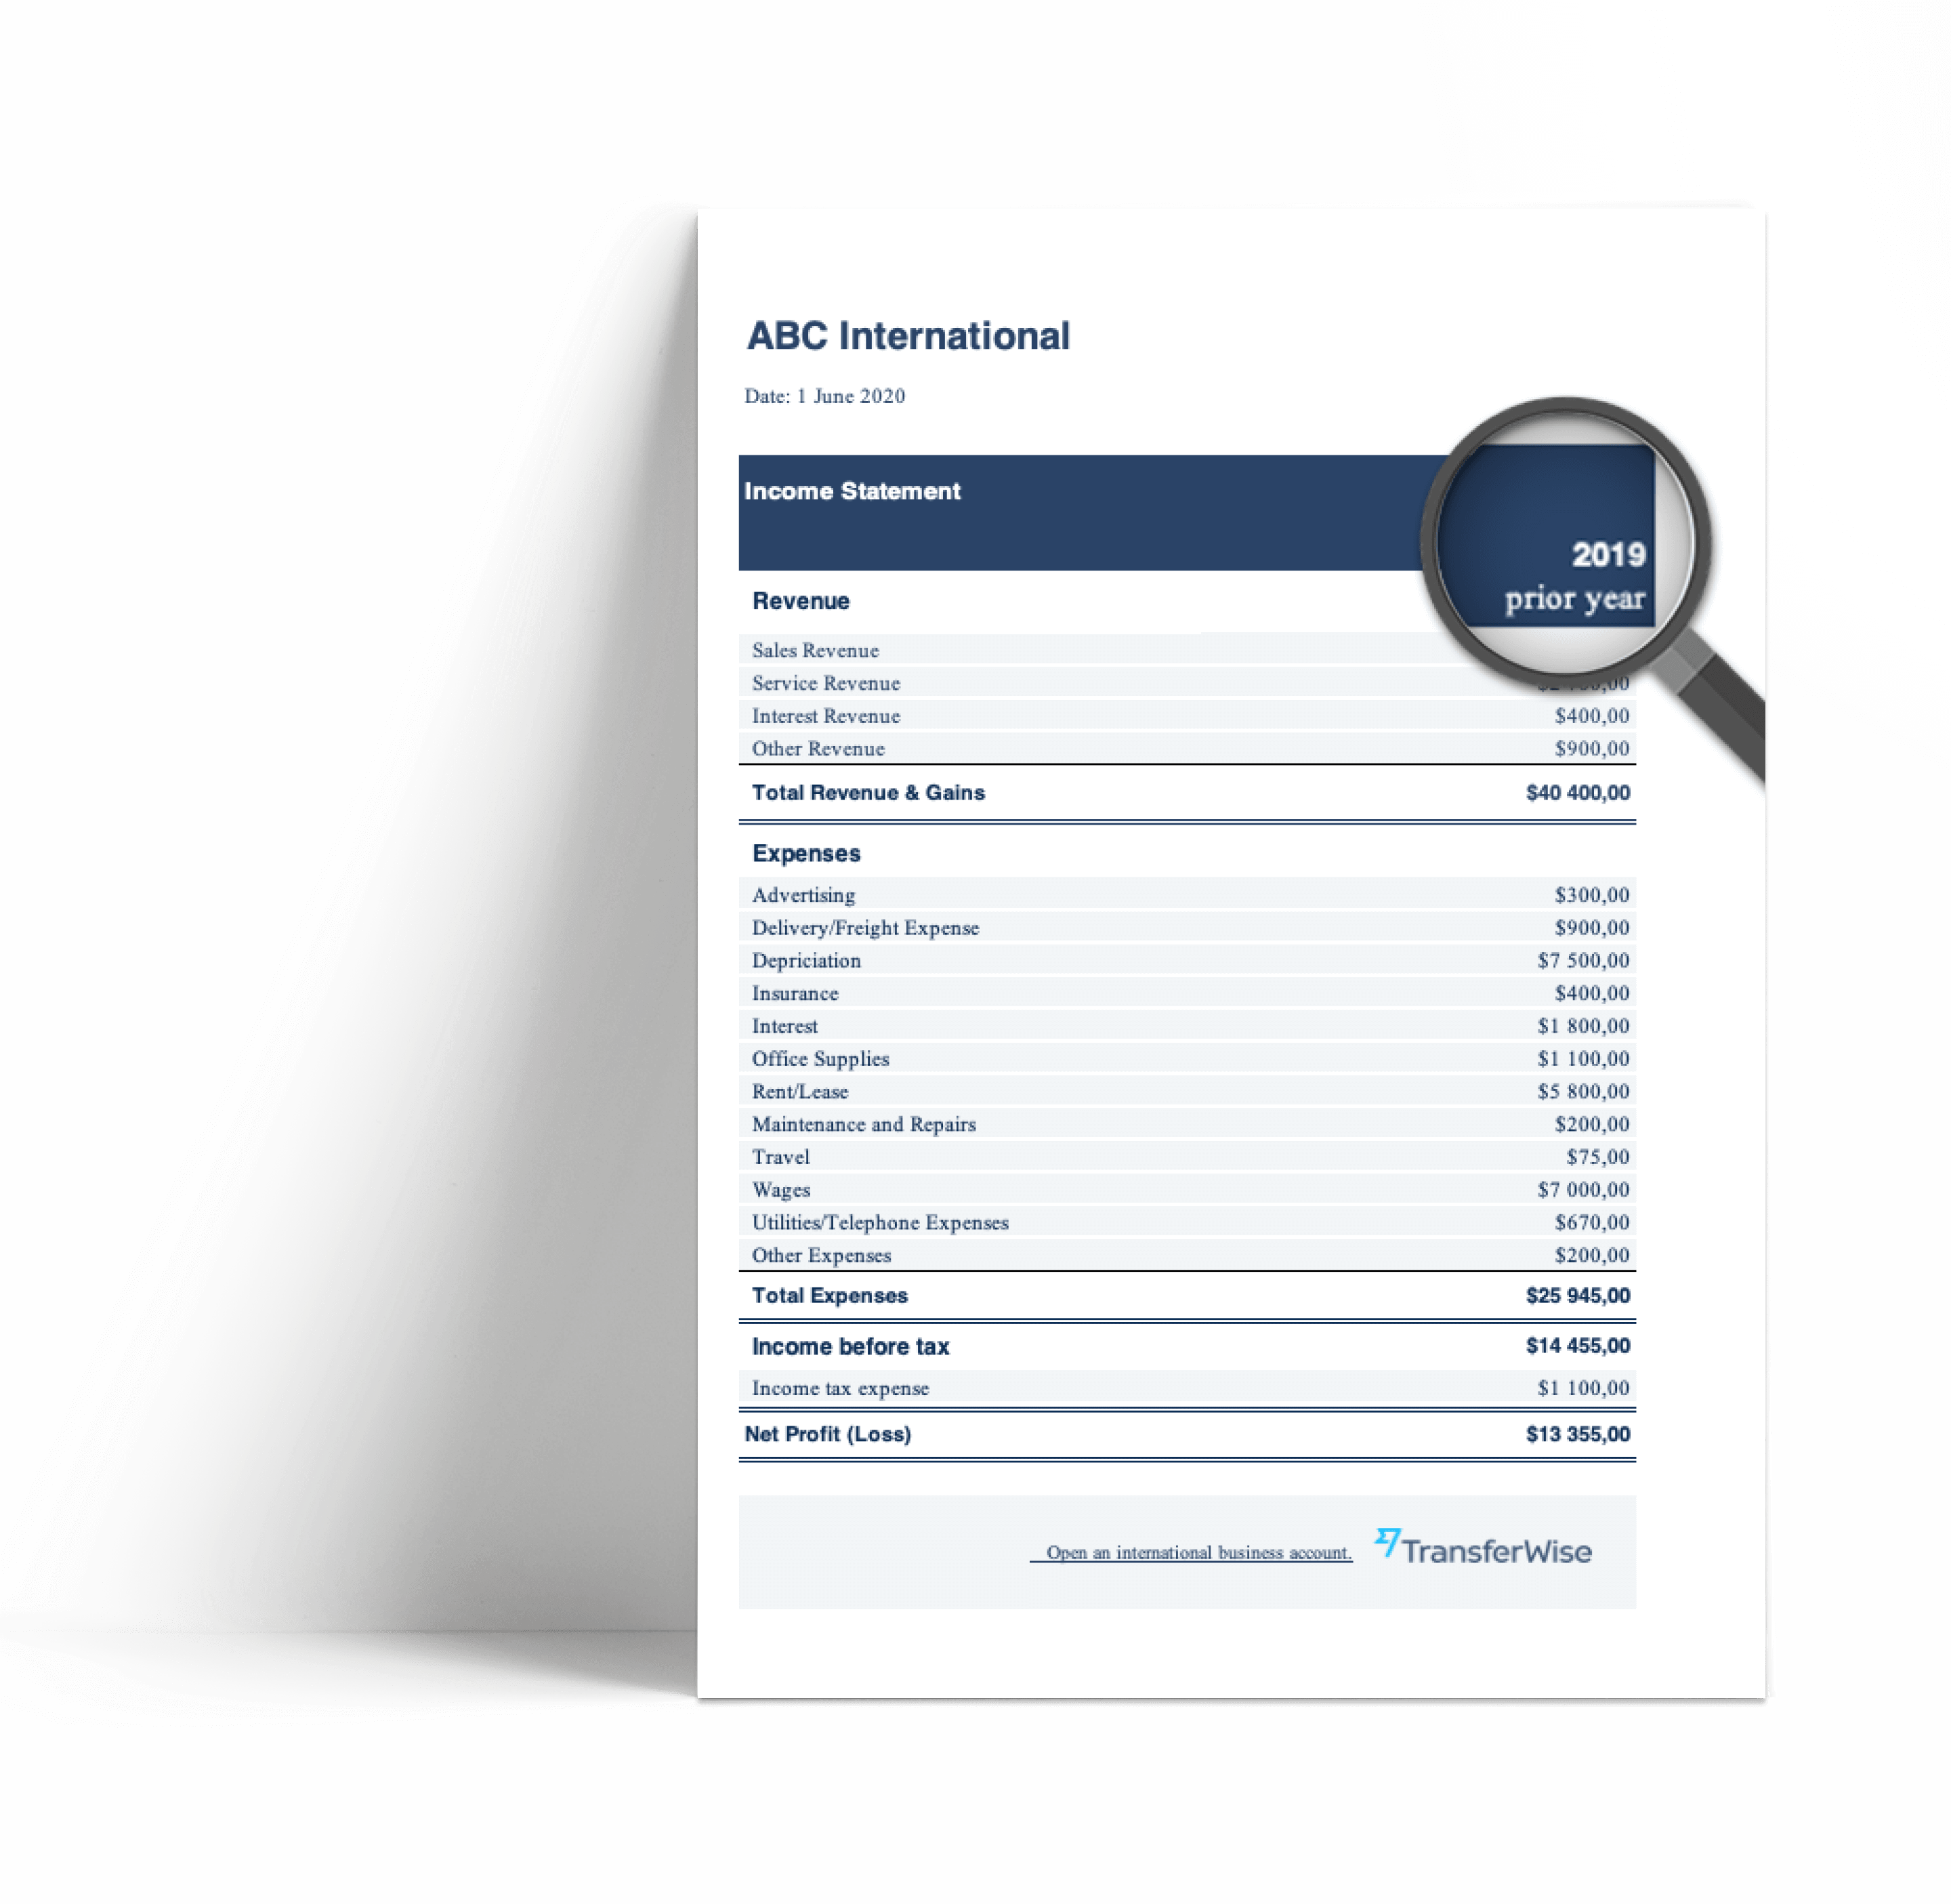 How to create the profit and loss statement template?